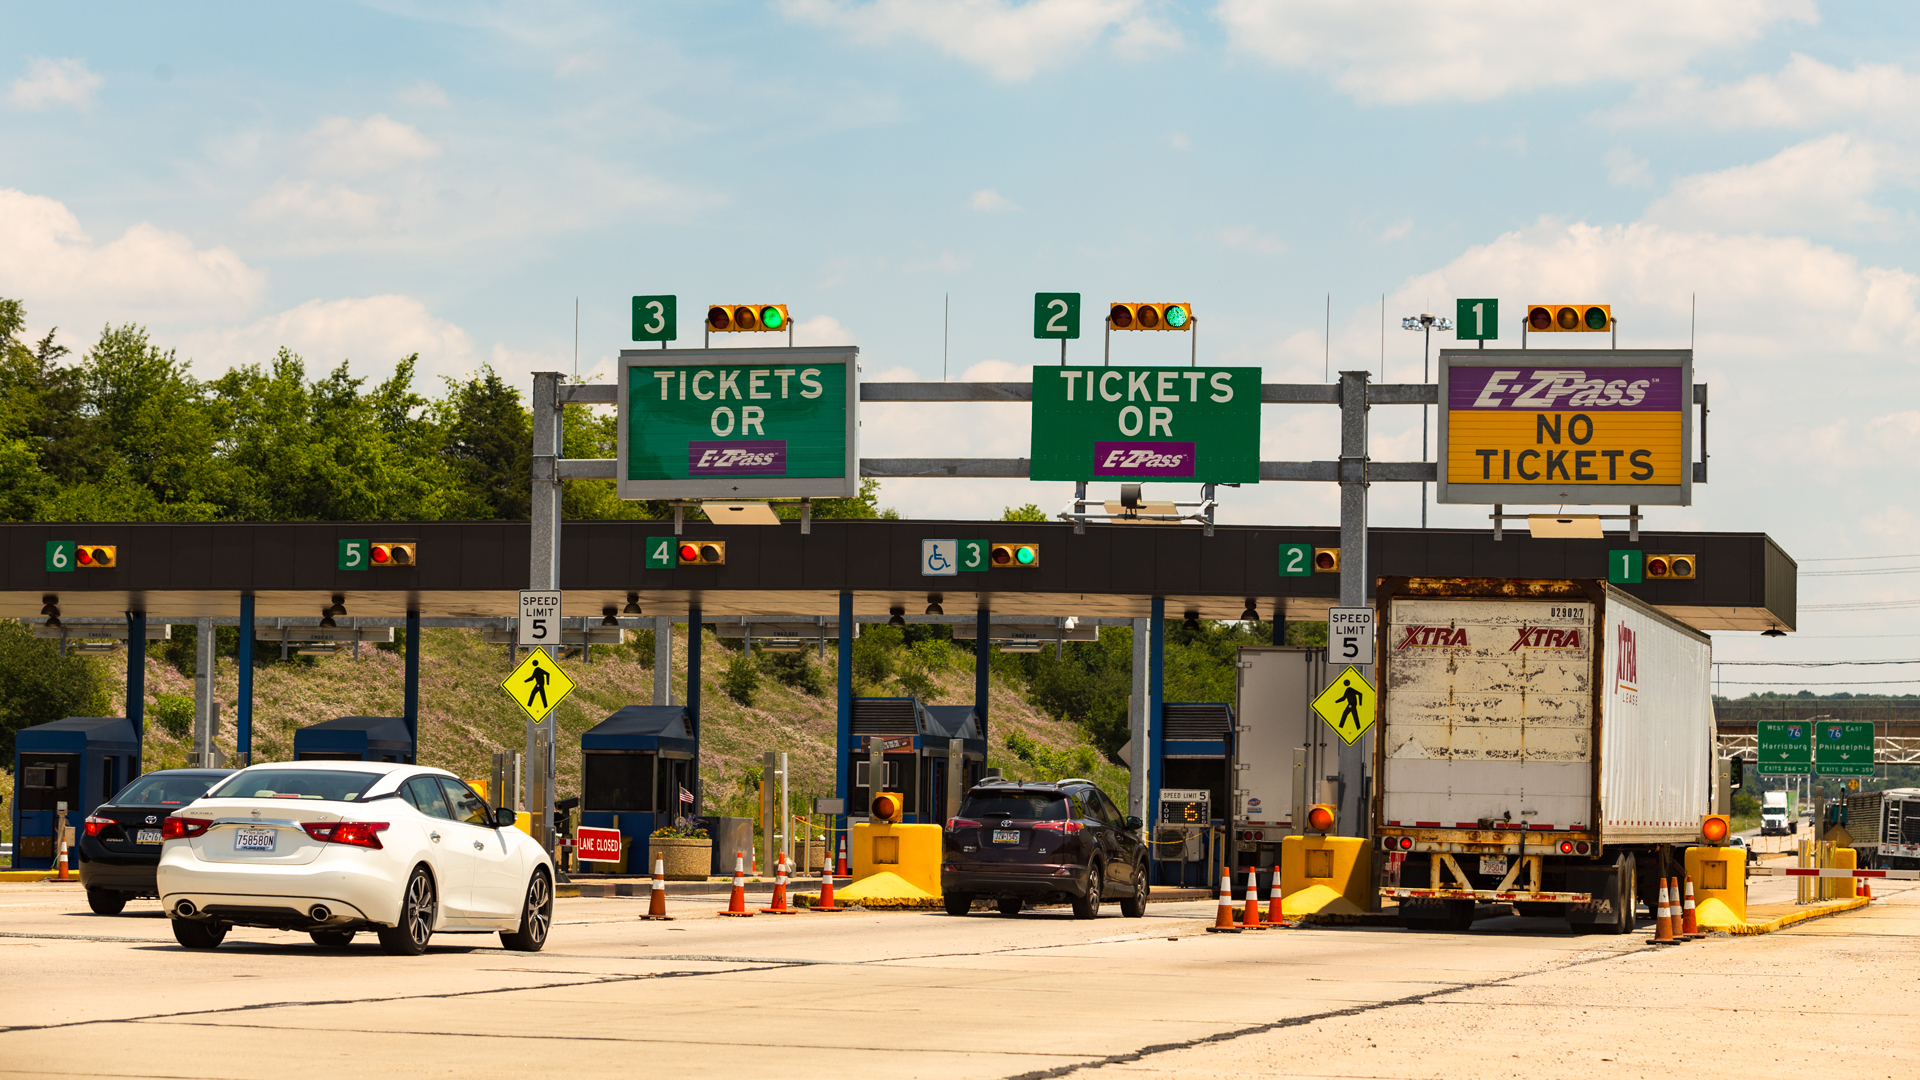 Vehicles approach the entrance toll plaza at the Pennsylvania Turnpike Interchange in this file photo from 2016. (Credit: iStock / Getty Images Plus)